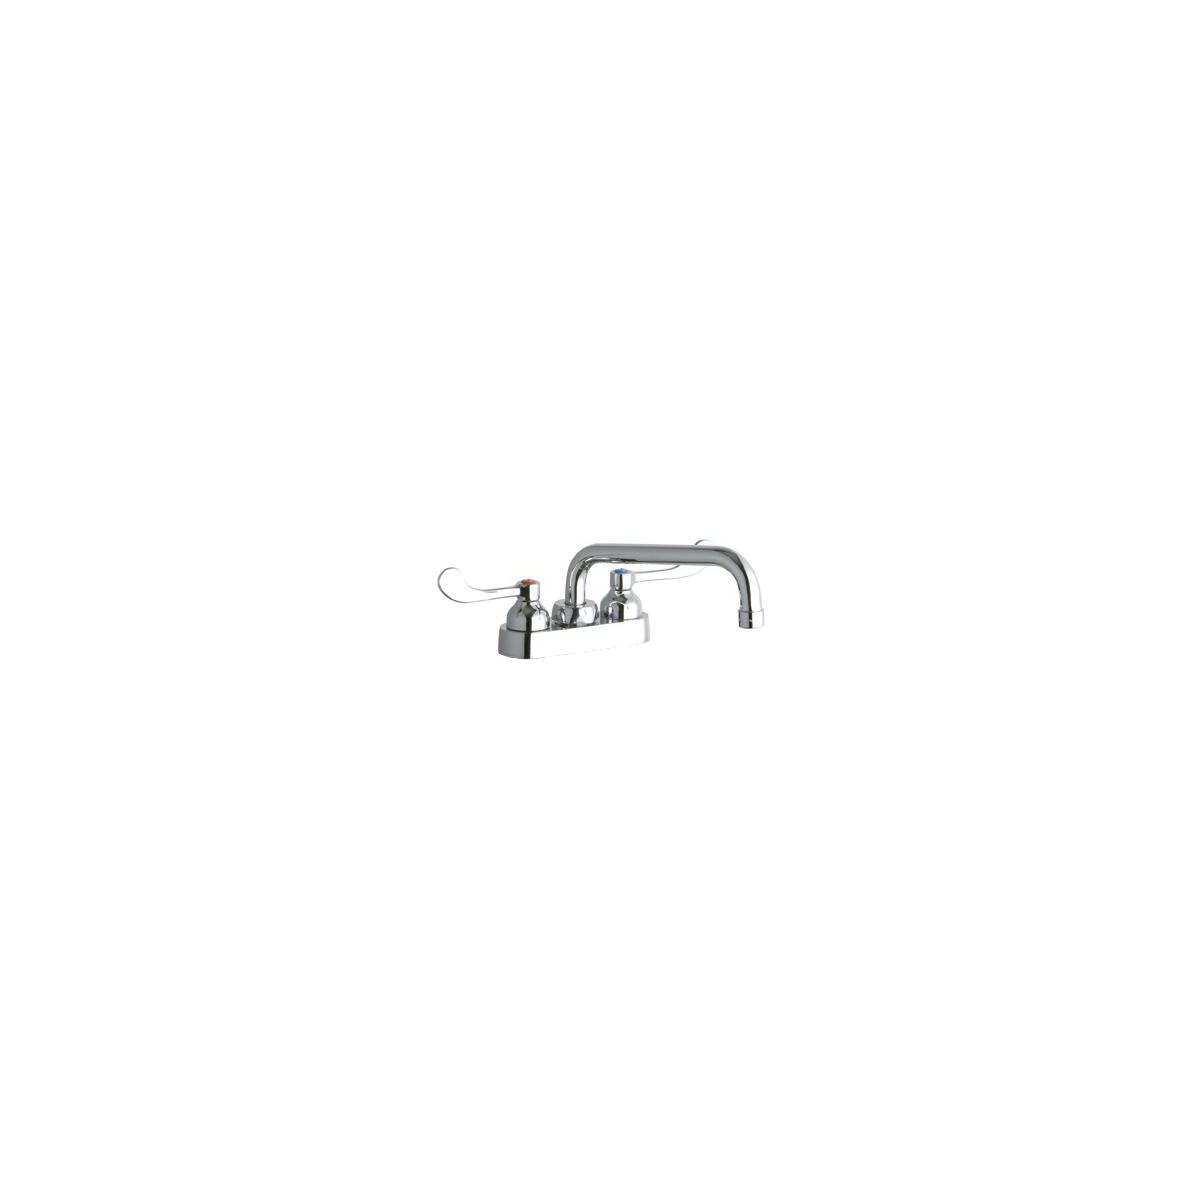 Elkay® LK406TS08T4 Centerset Bathroom Faucet, Chrome Plated, 2 Handles, 1.5 gpm